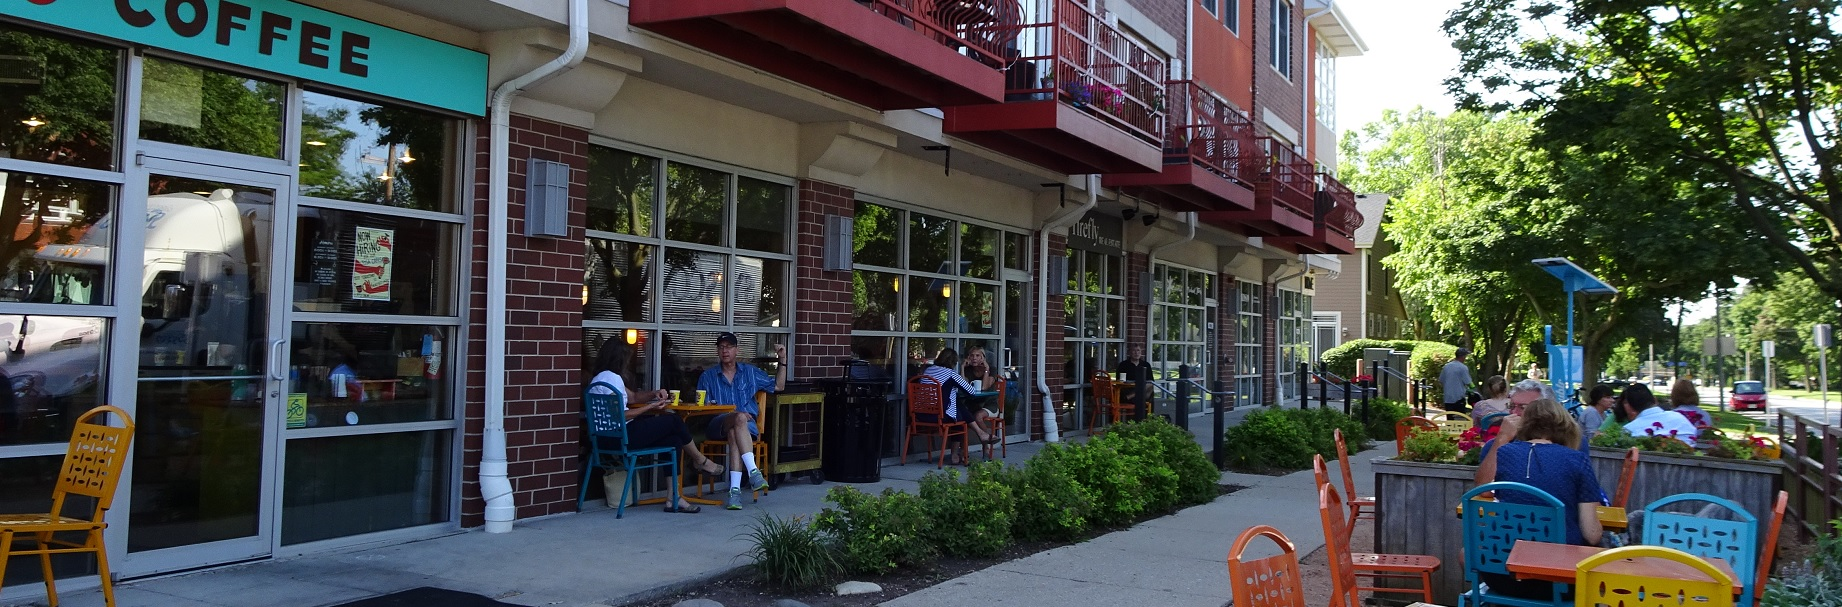 Colectivo in Wauwatosa. Image from the City of Wauwatosa.